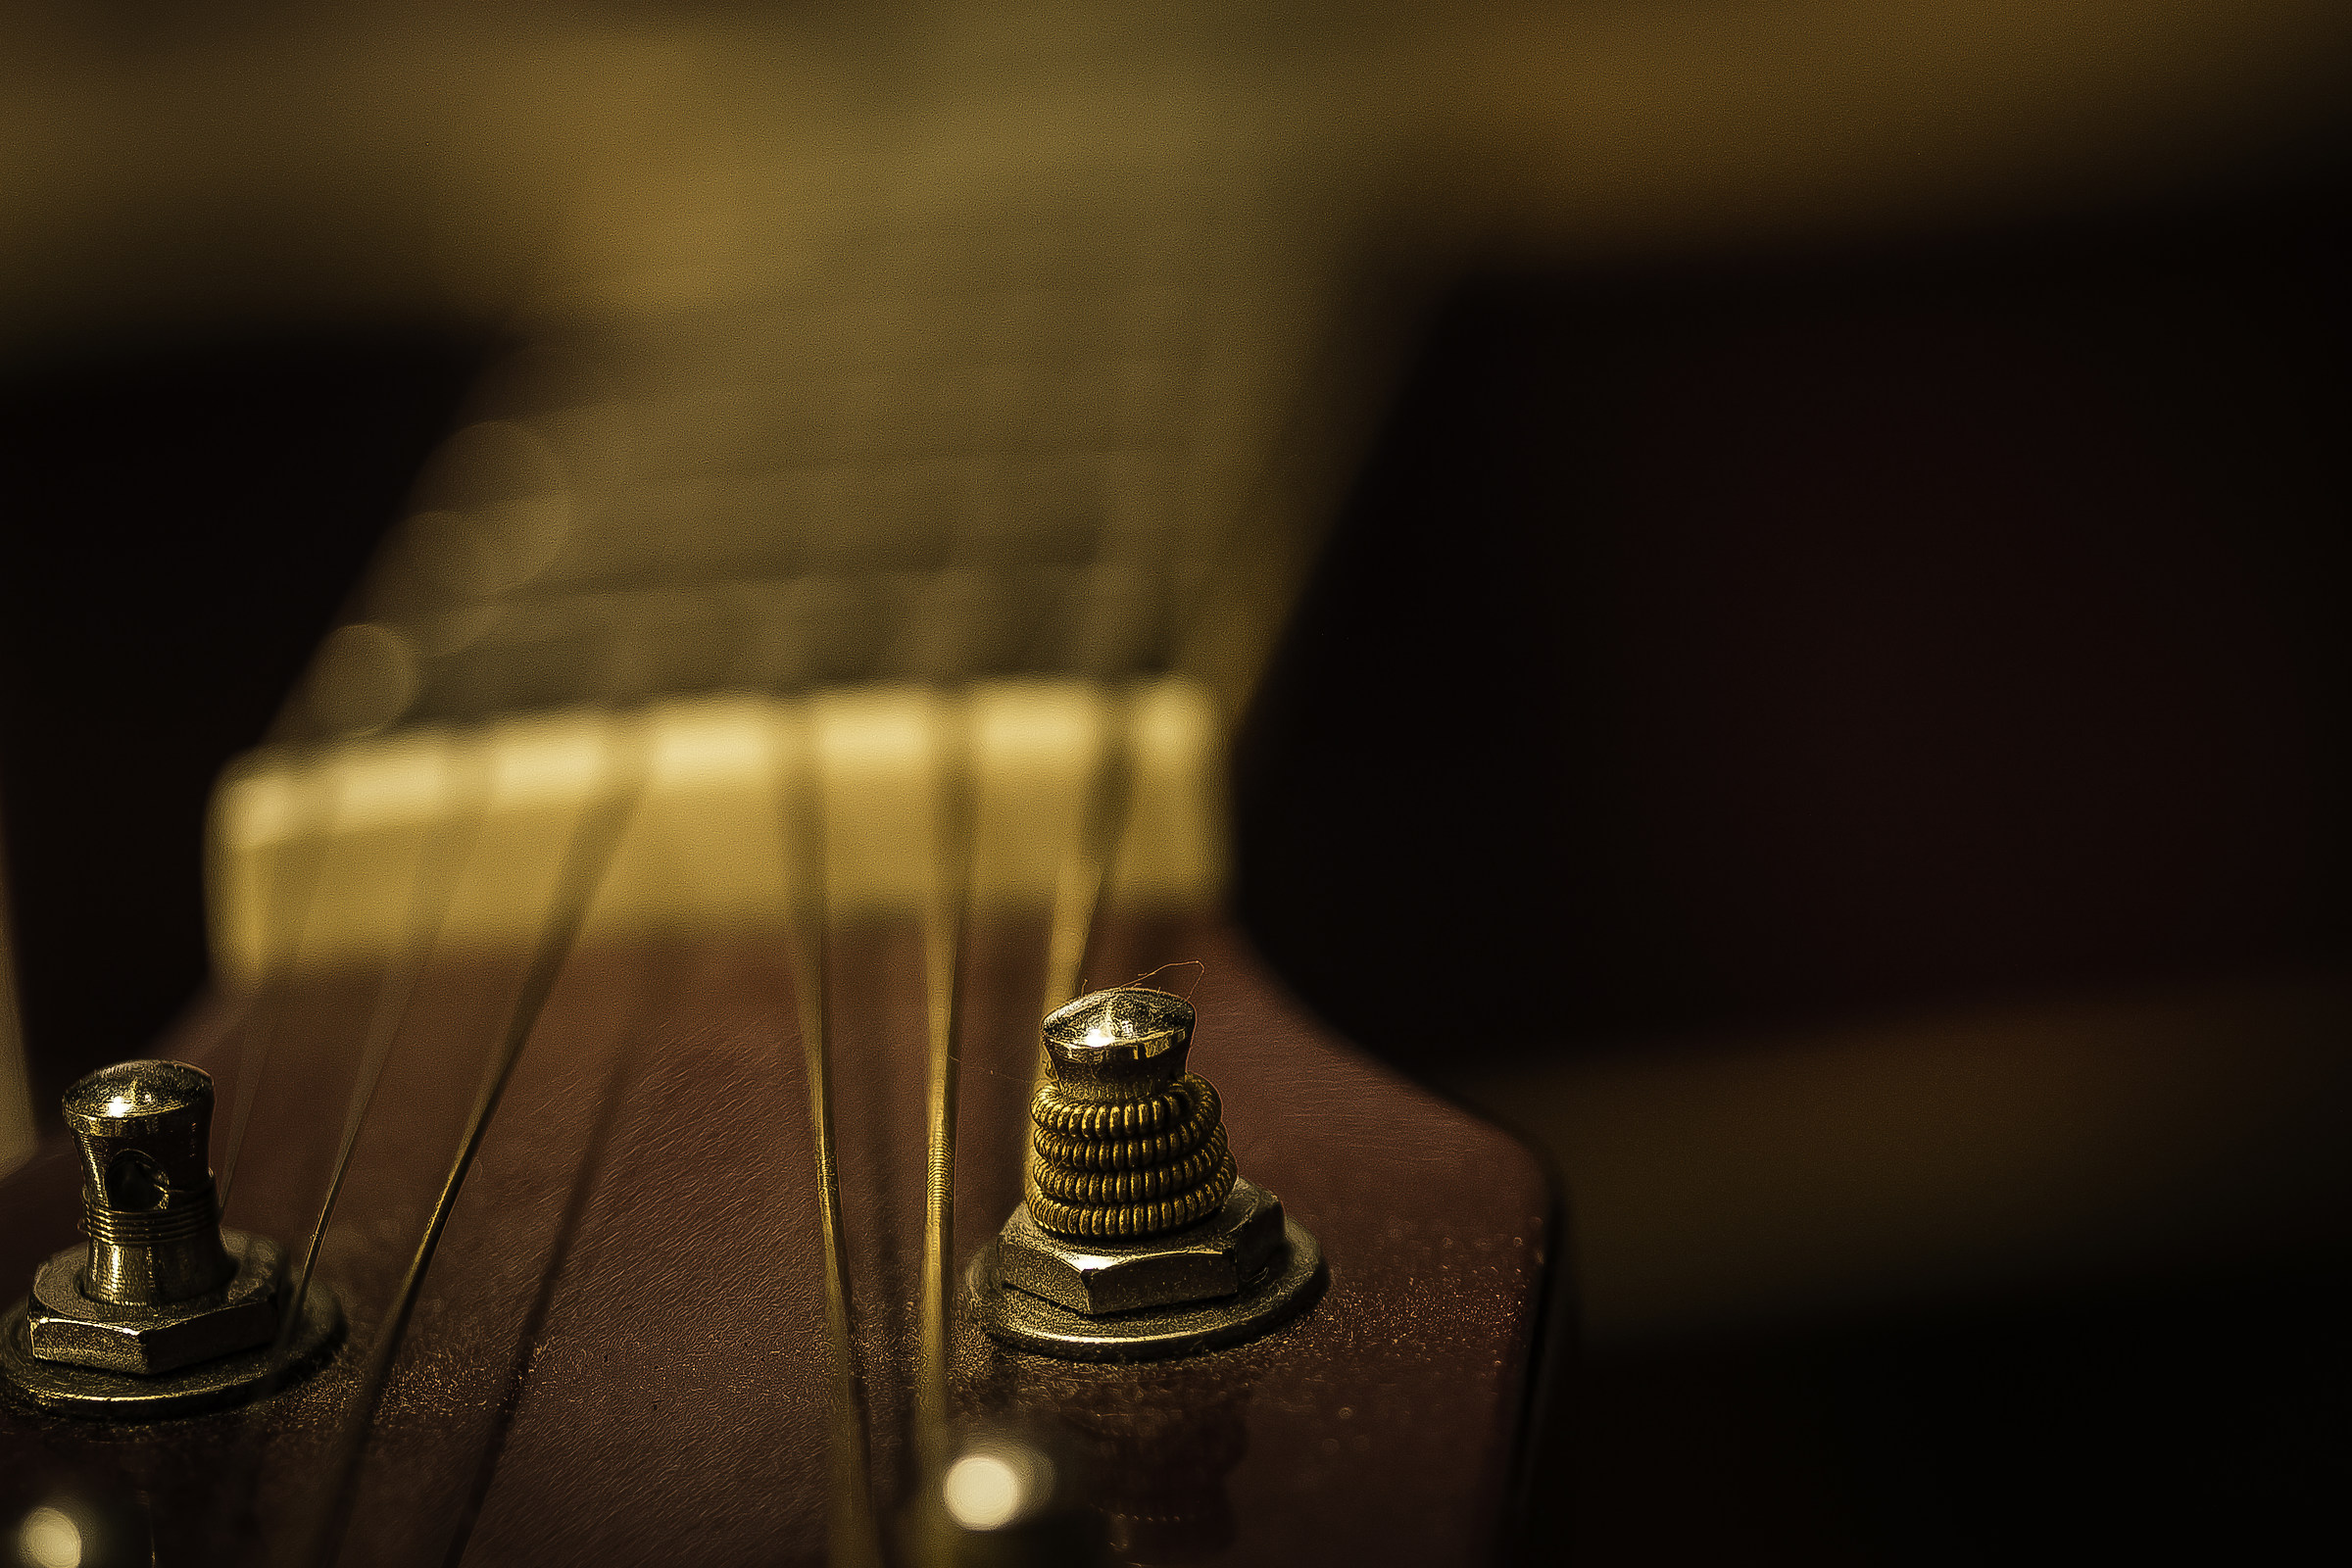 The guitar poetry...